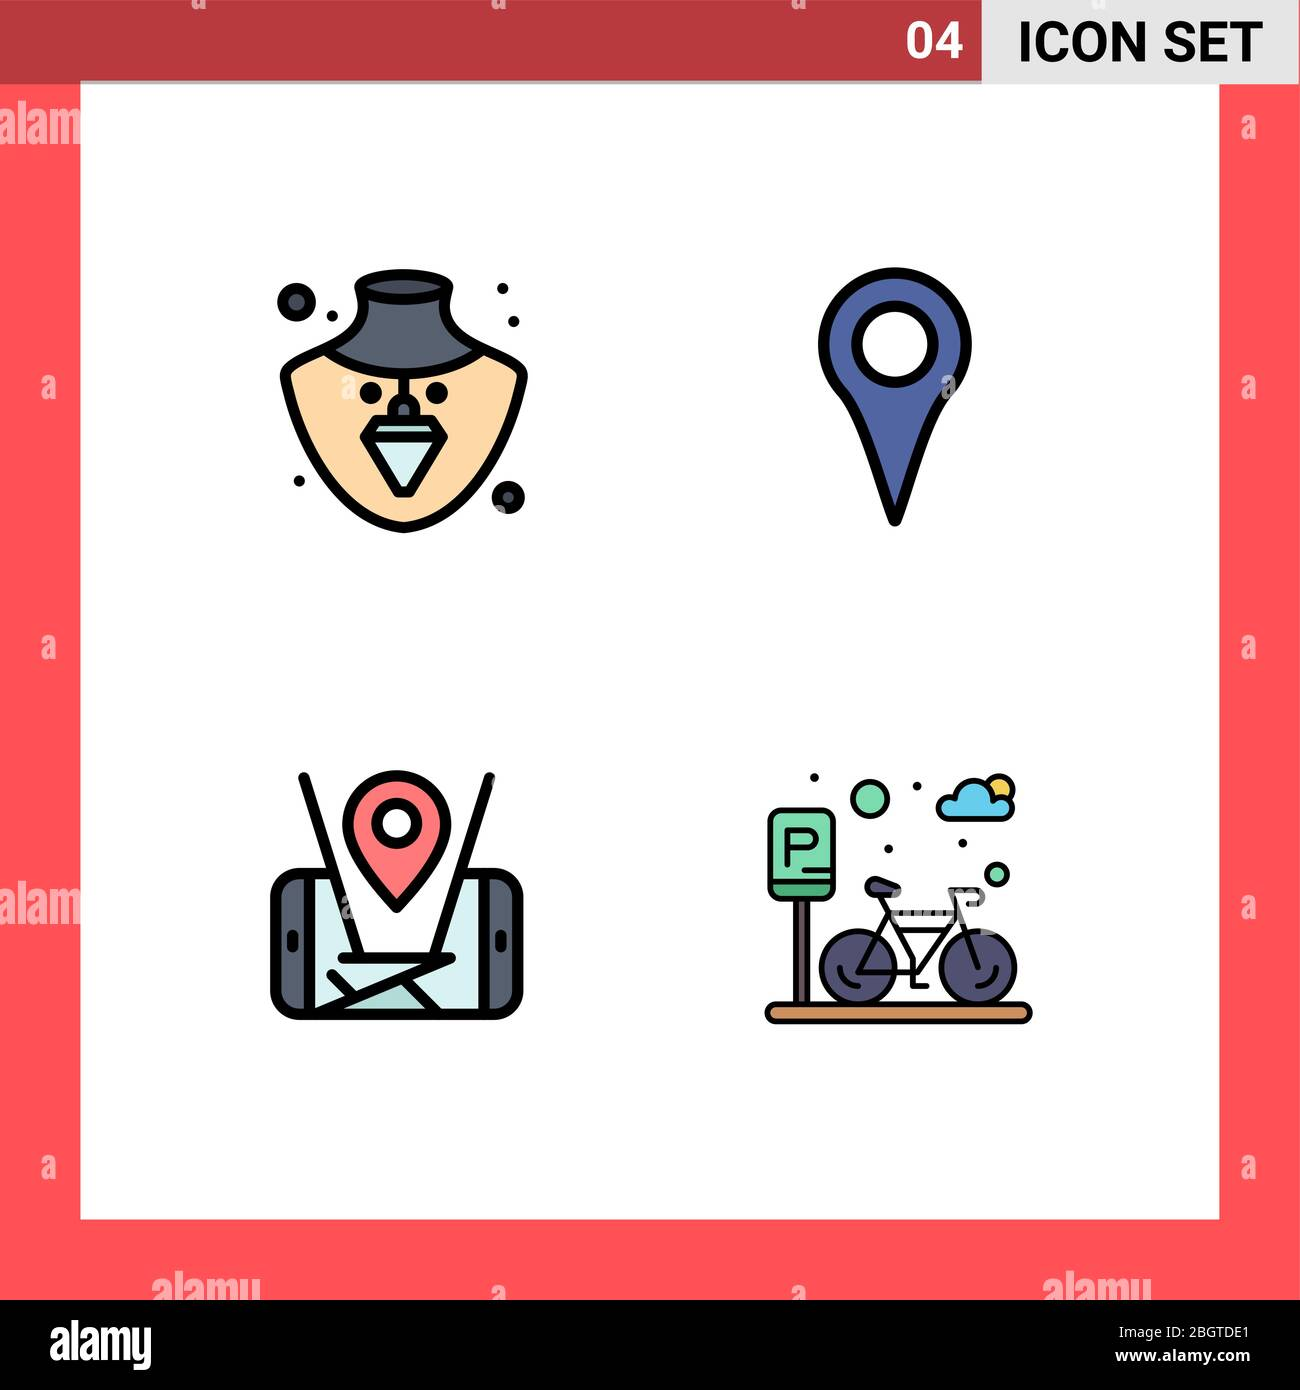 Universal Icon Symbols Group Of 4 Modern Filledline Flat Colors Of Nacklace Location Geo Location Pin Cycle Editable Vector Design Elements Stock Vector Image Art Alamy